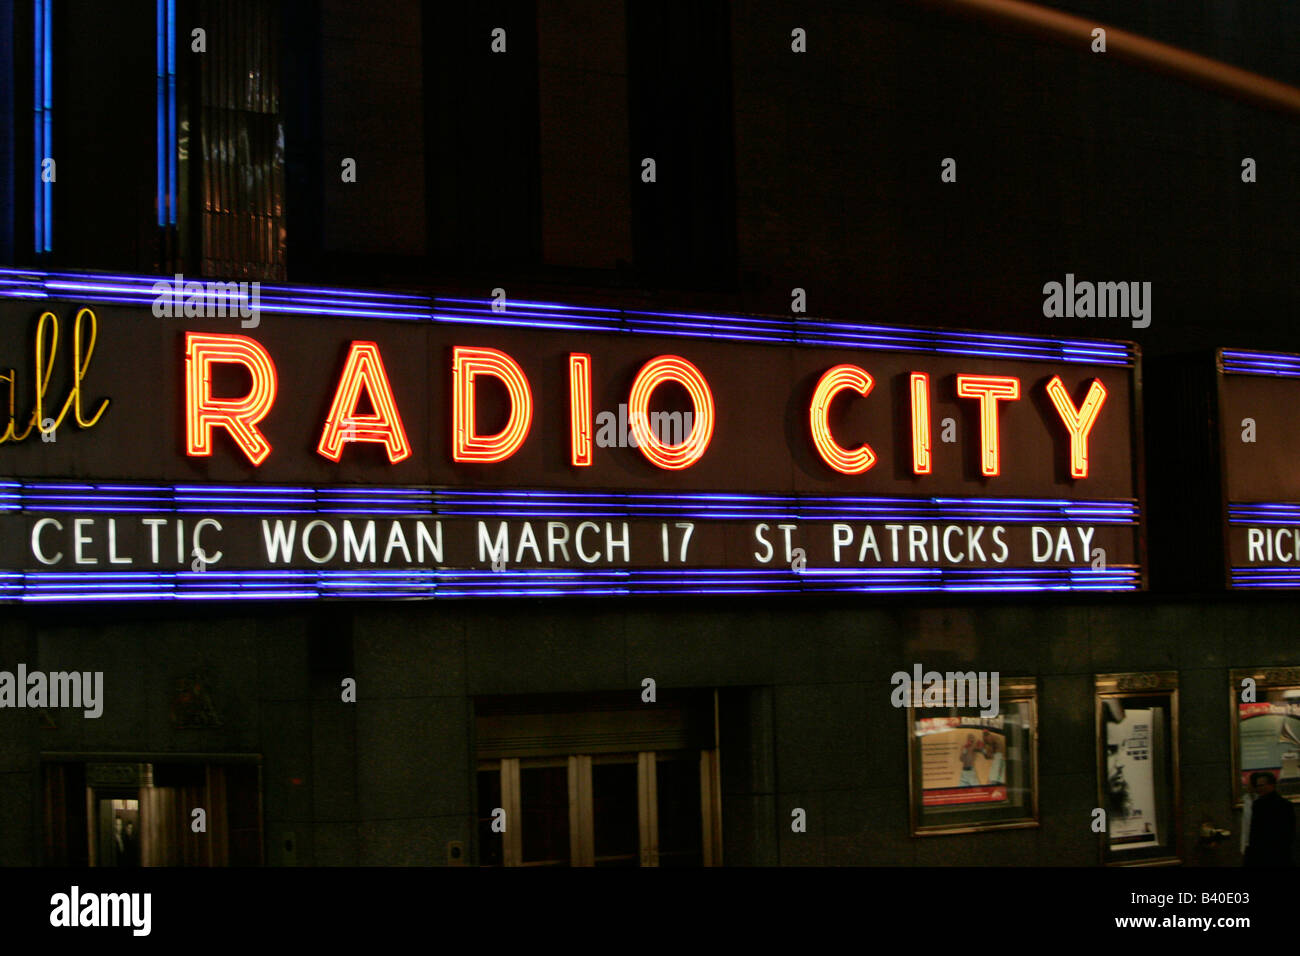 Radio city dating login